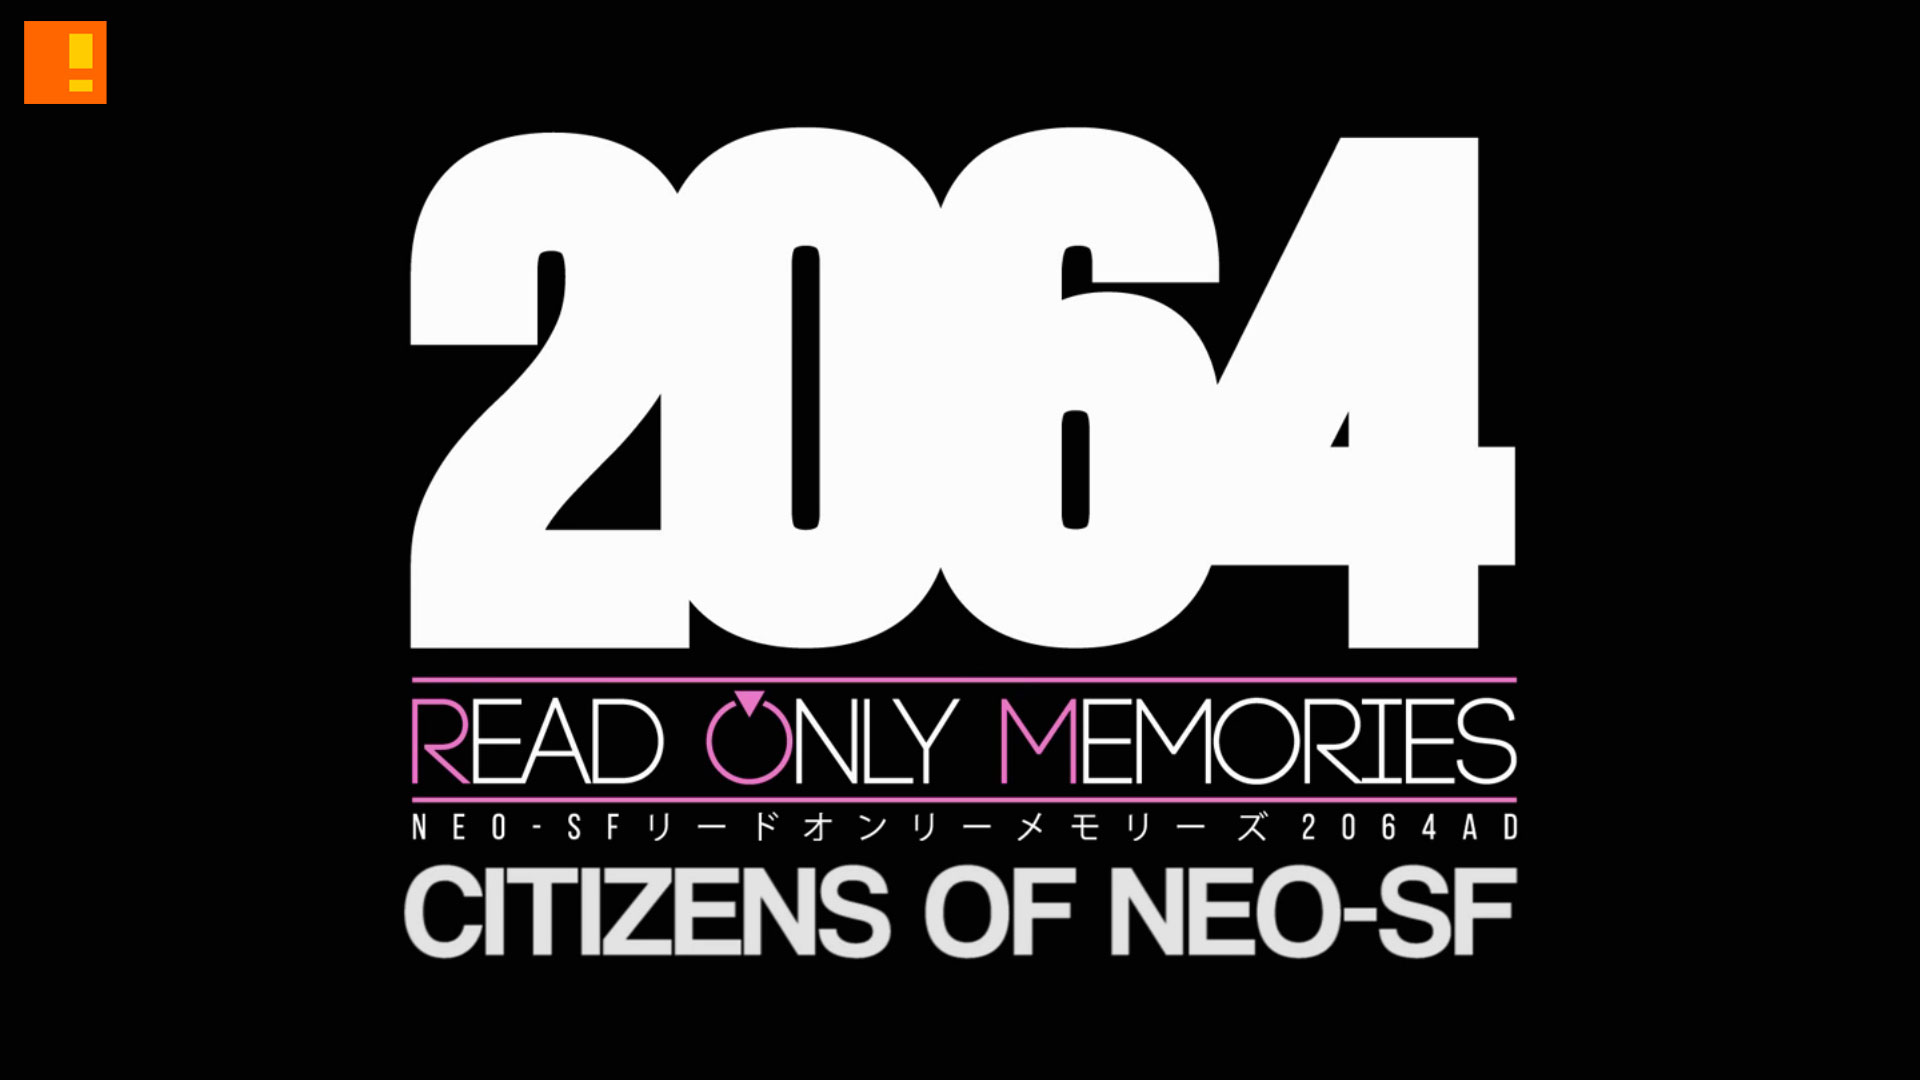 read only memories, 2064 read only memories, playstation , sony , vita, ps4, playstation 4, trailer, neo sf, neo san francisco